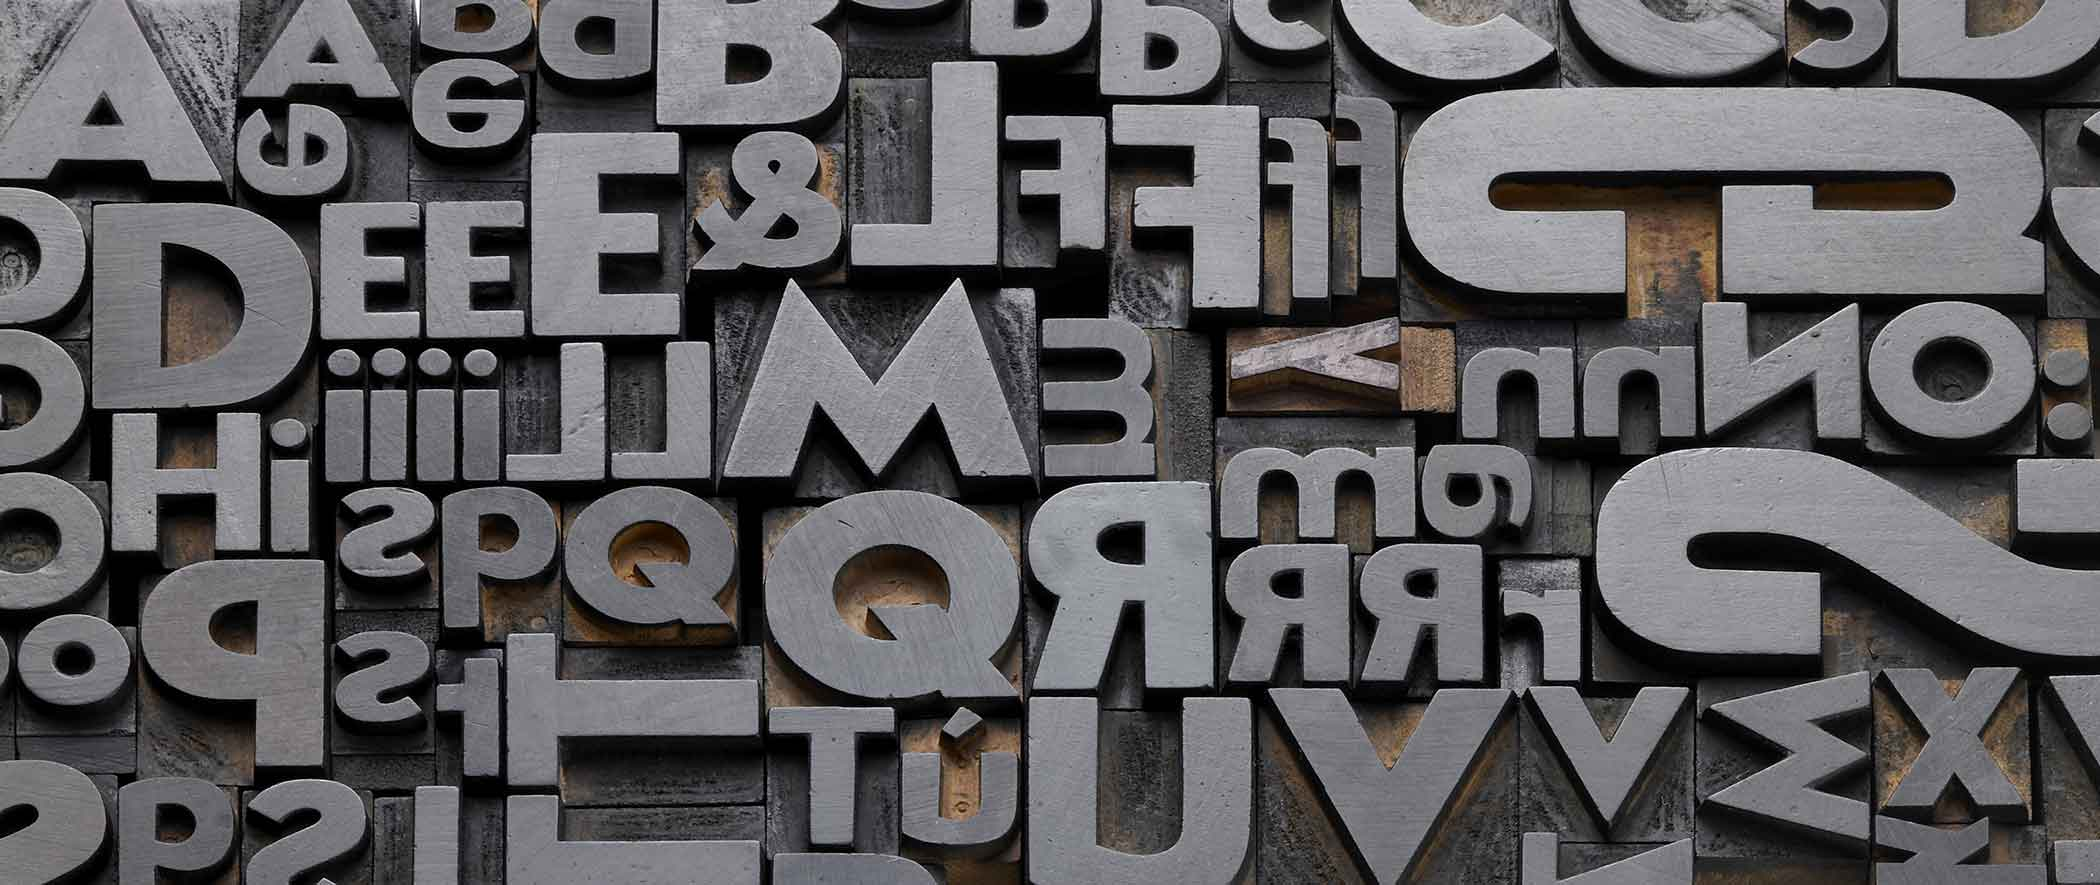 How to Choose the Right Font for Your Website